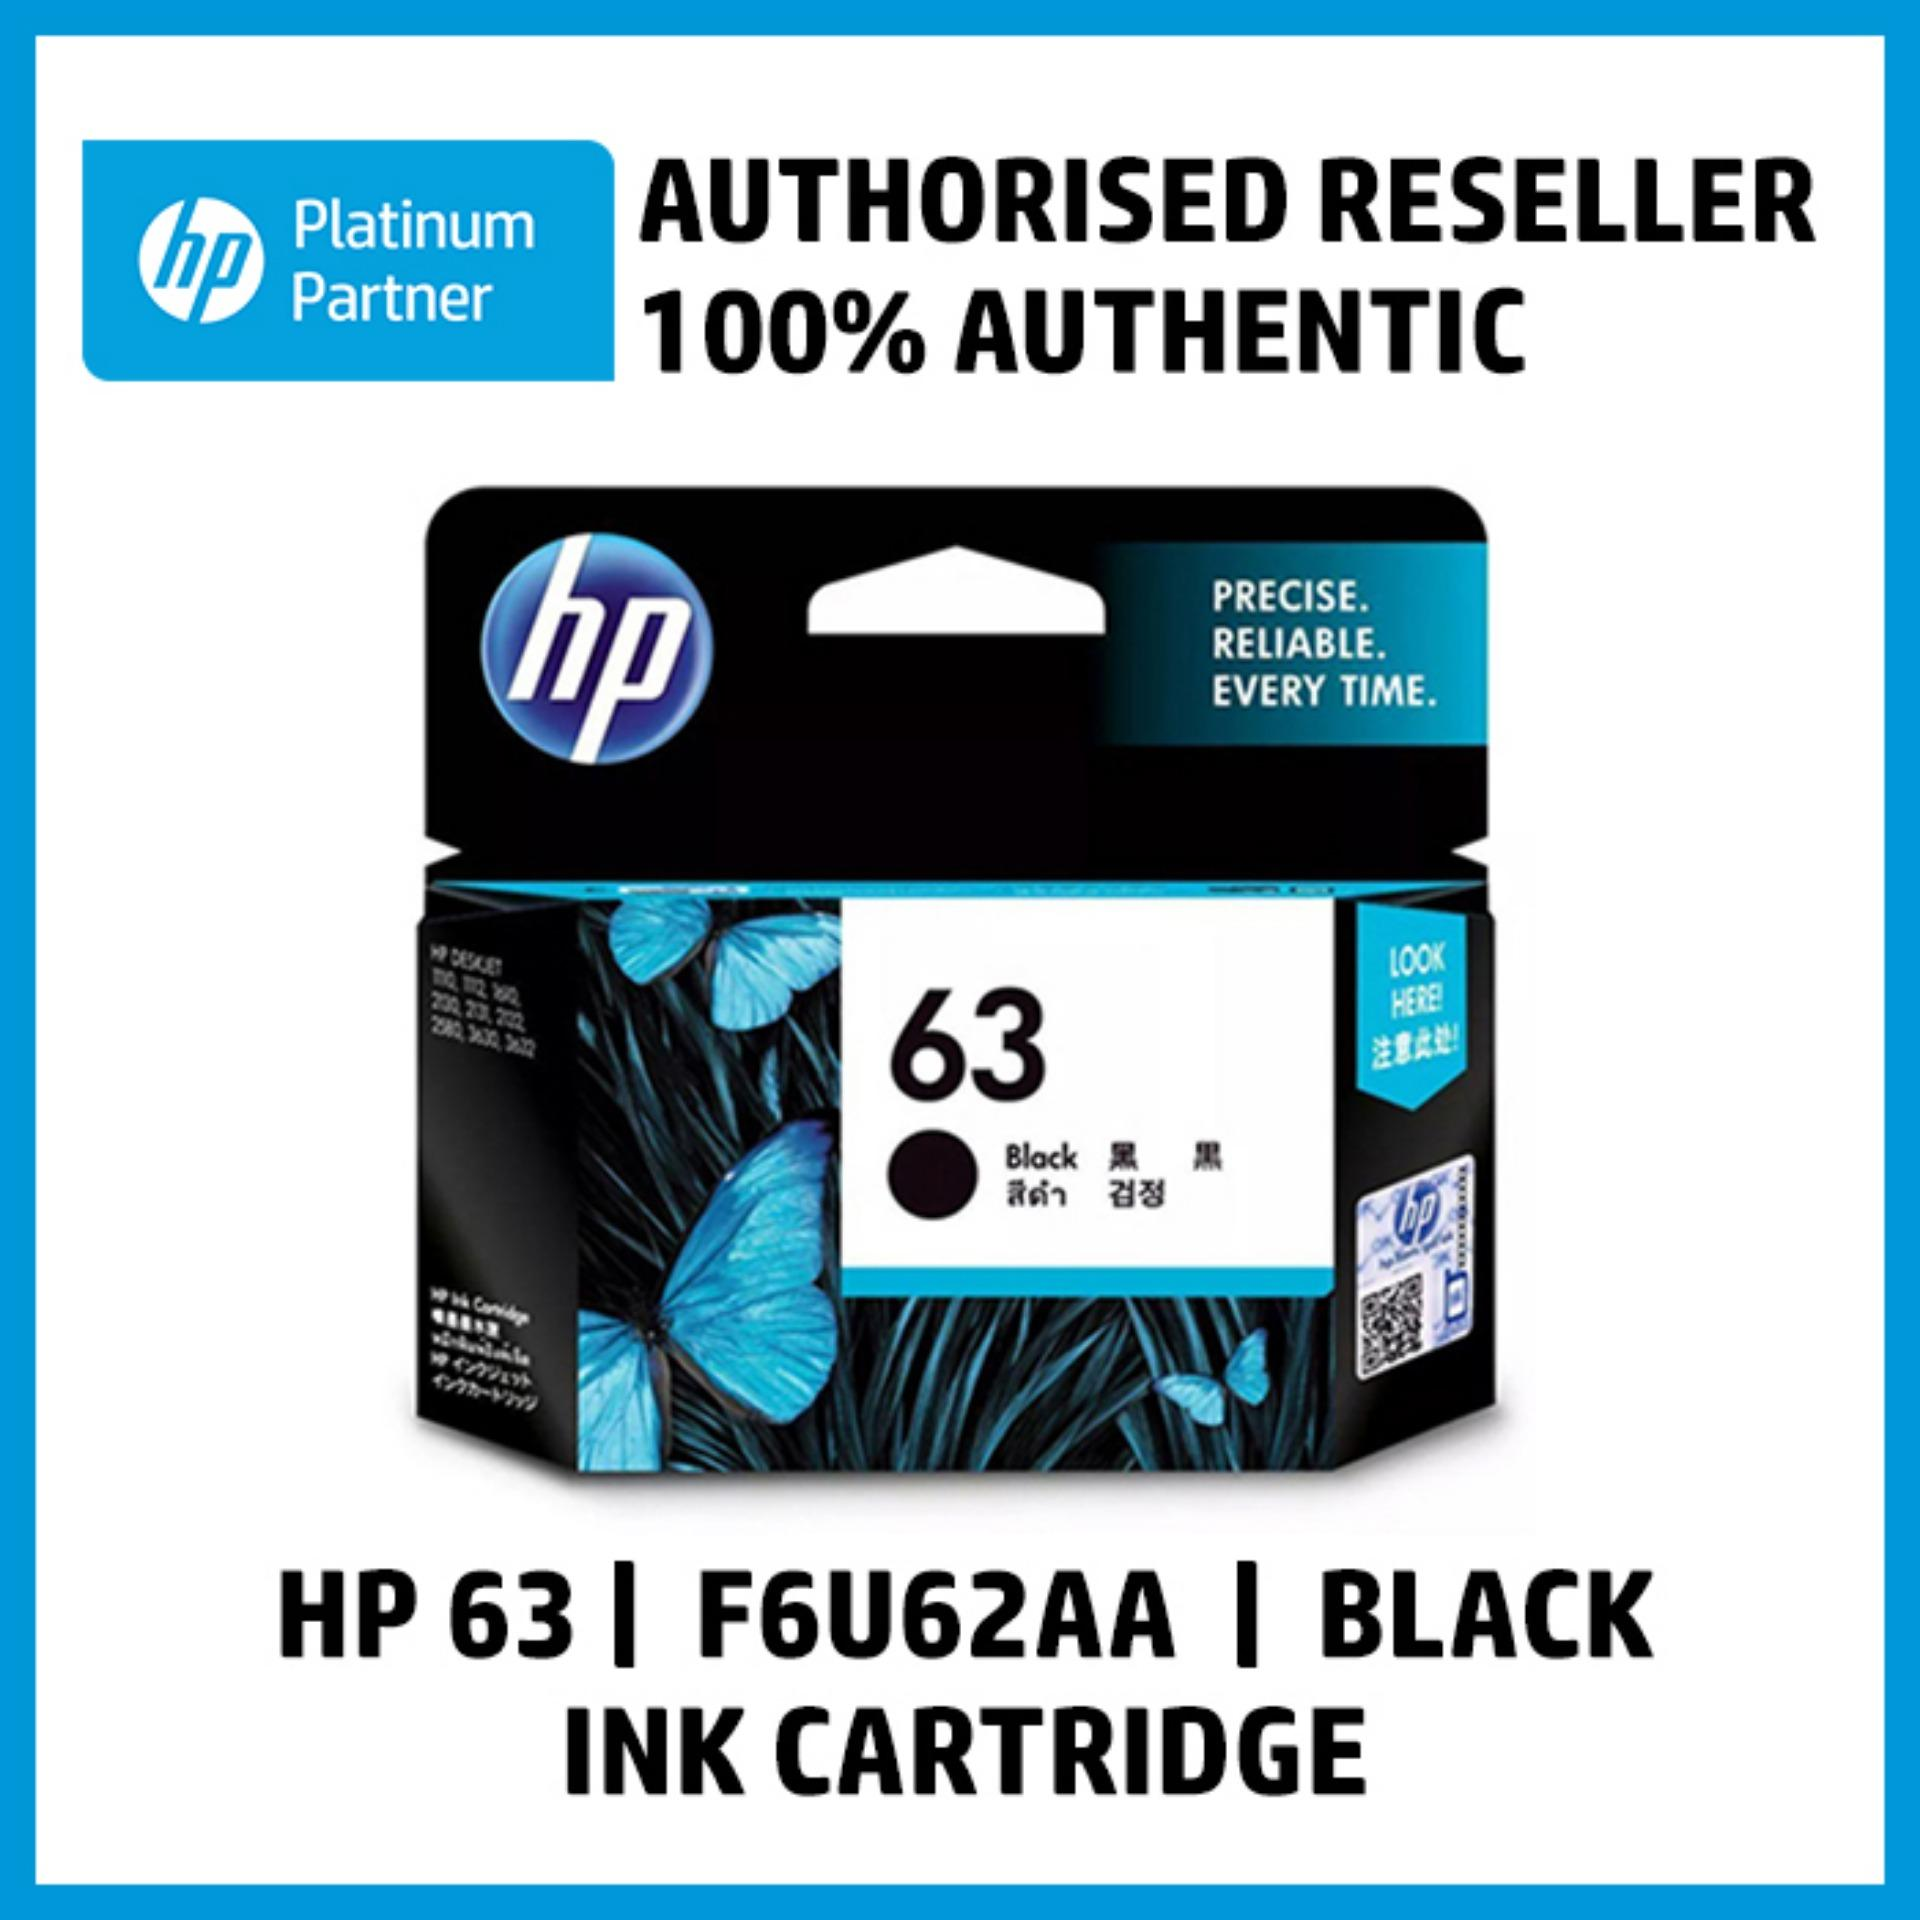 Hp 63 Black Original Ink Cartridge (f6u62aa) By Integrated Computer Systems, Inc..